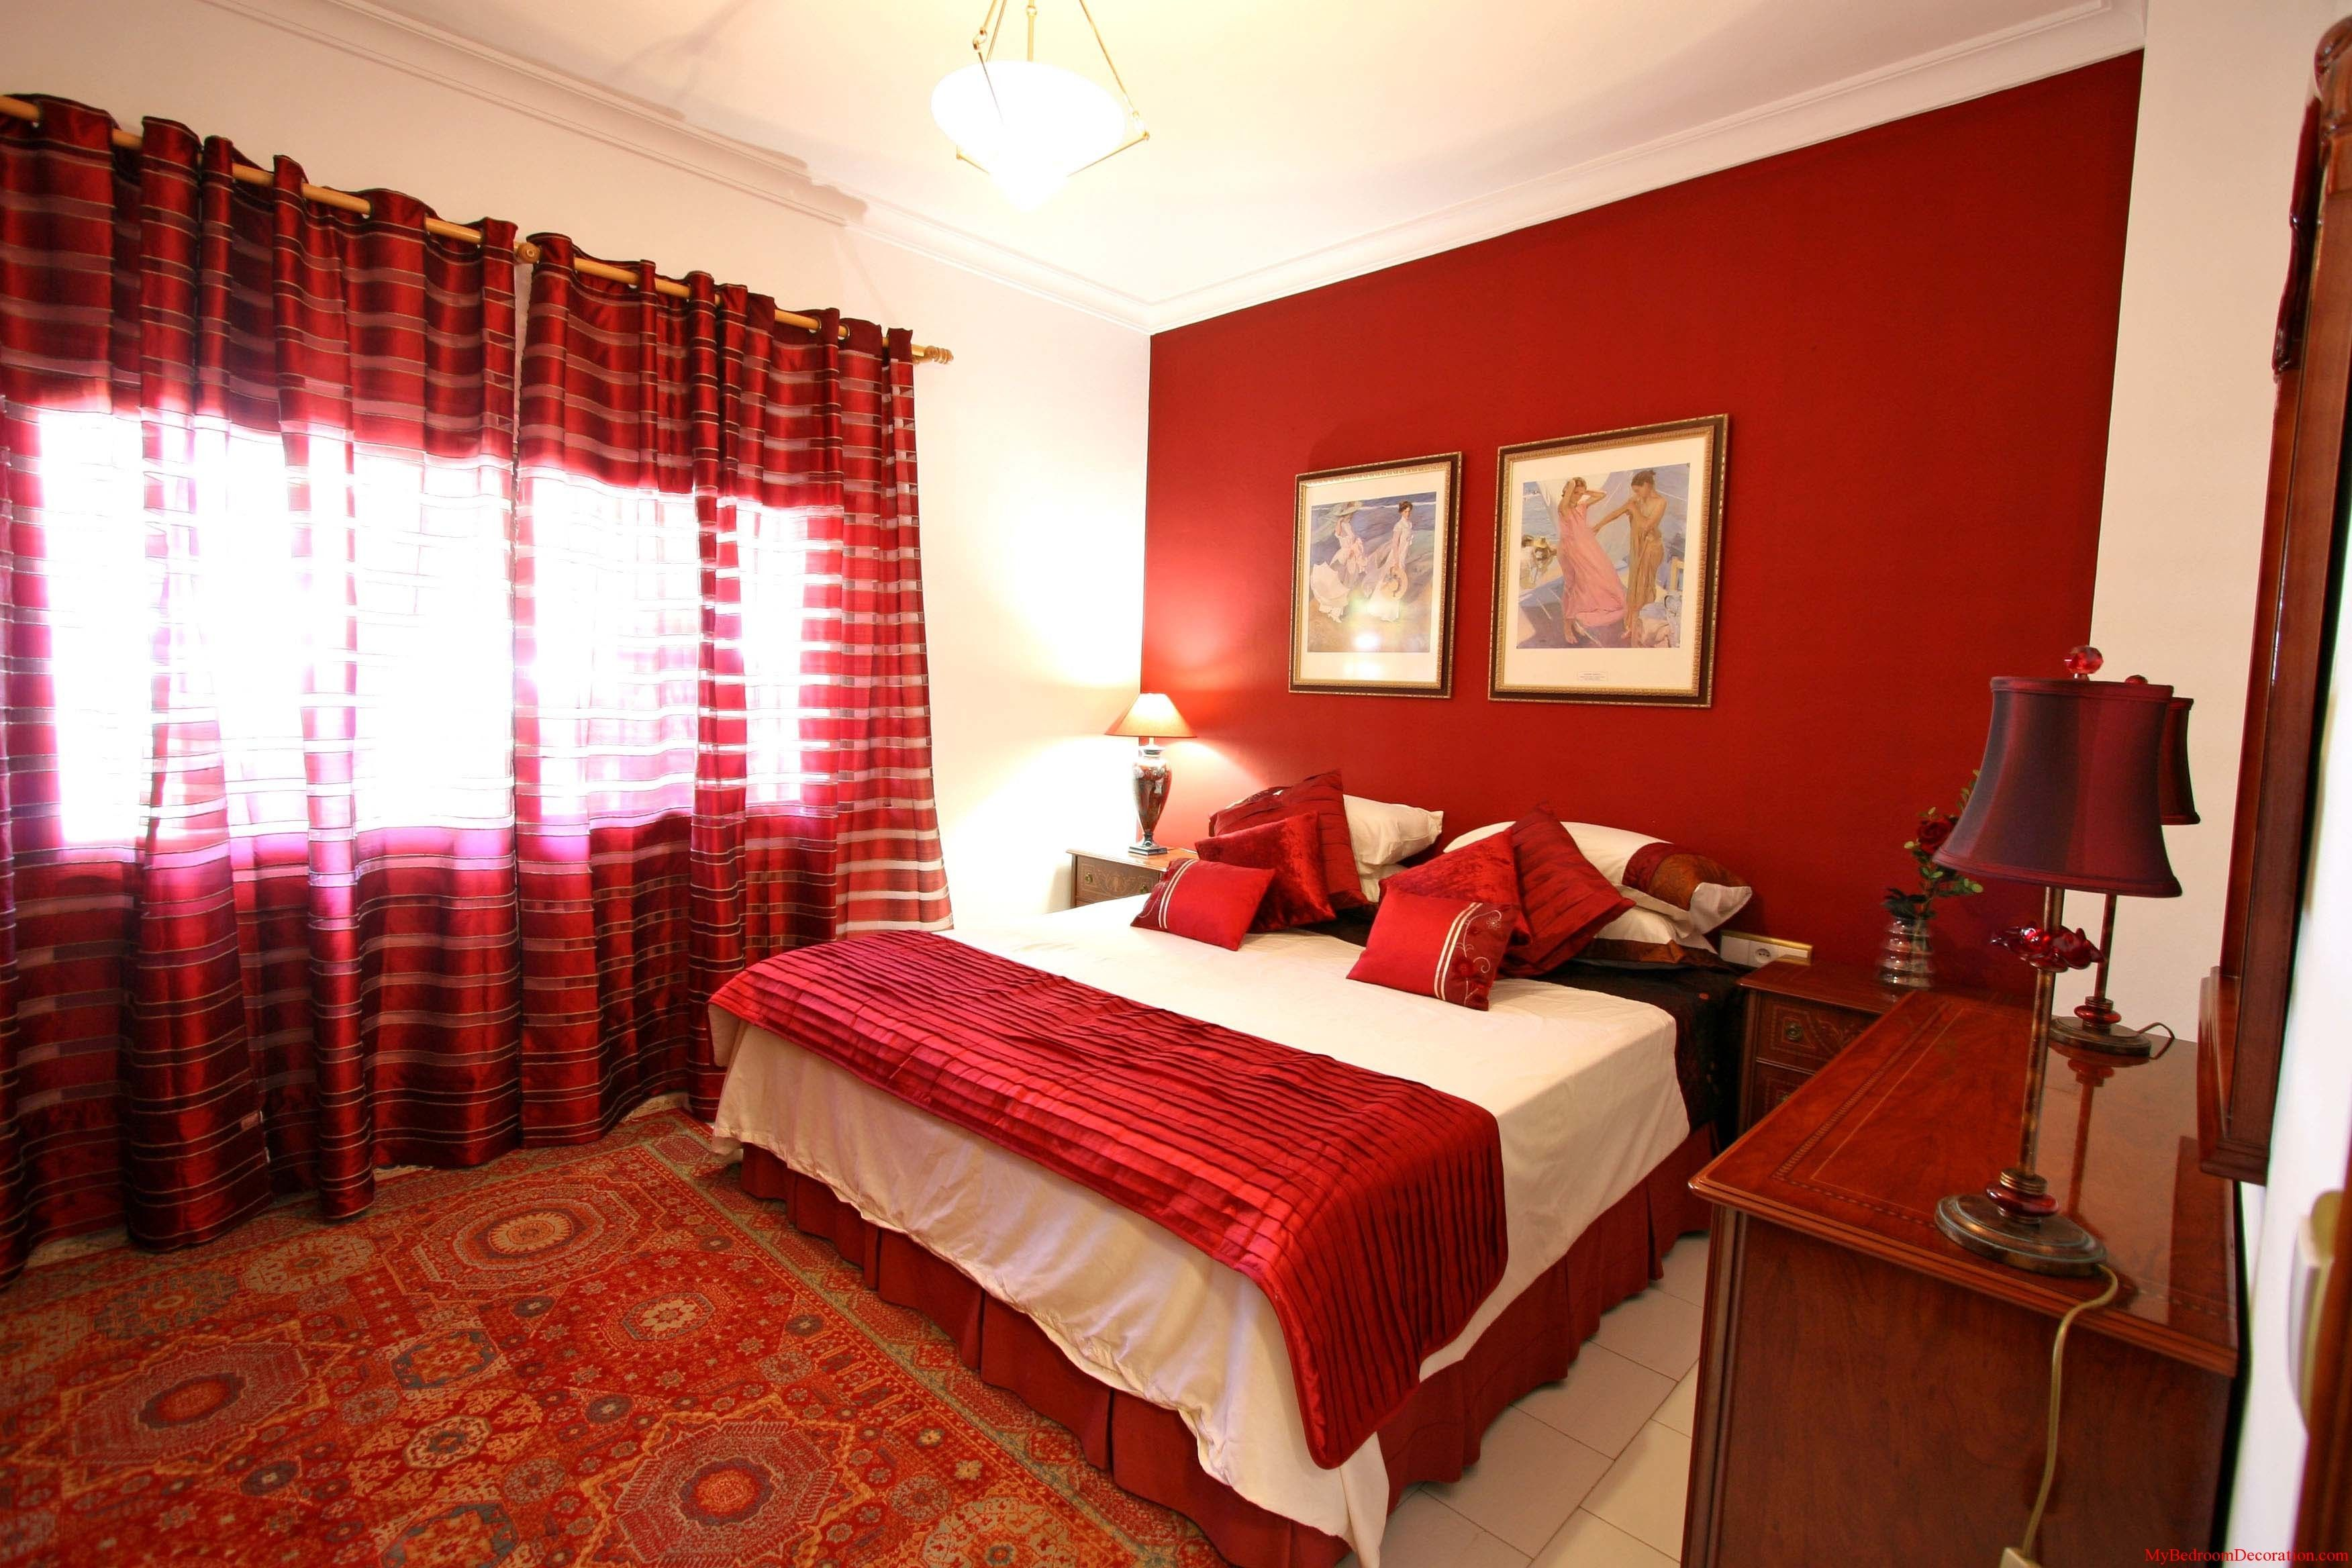 Feng Shui Farben Im Schlafzimmer Red Color Schemes With Romantic Bedroom Ideas Red Color Schemes With Romantic Bedroom Ideas Wall Col… | Schlafzimmer Design, Rotes Schlafzimmer, Schlafzimmer Farben